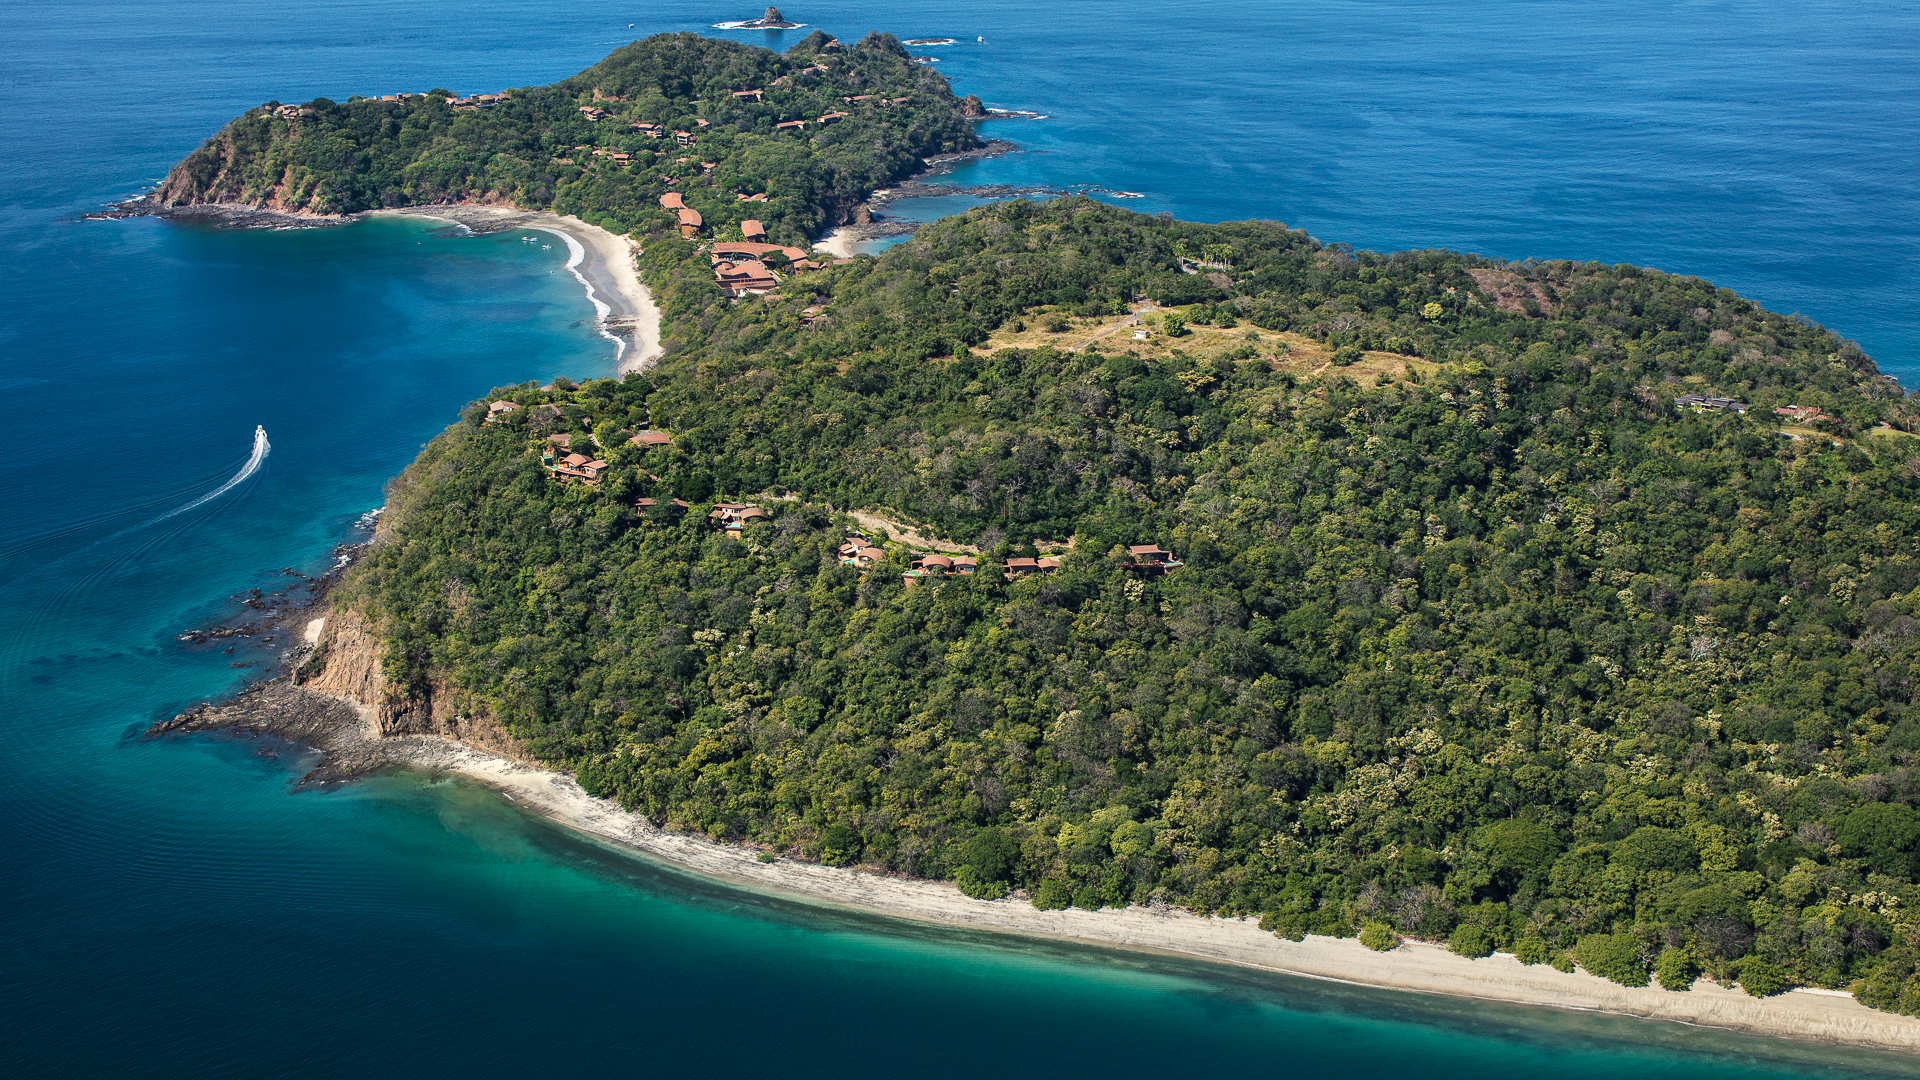 Papagayo aerial. Dp2 to the right of Exclusive Resorts villas.